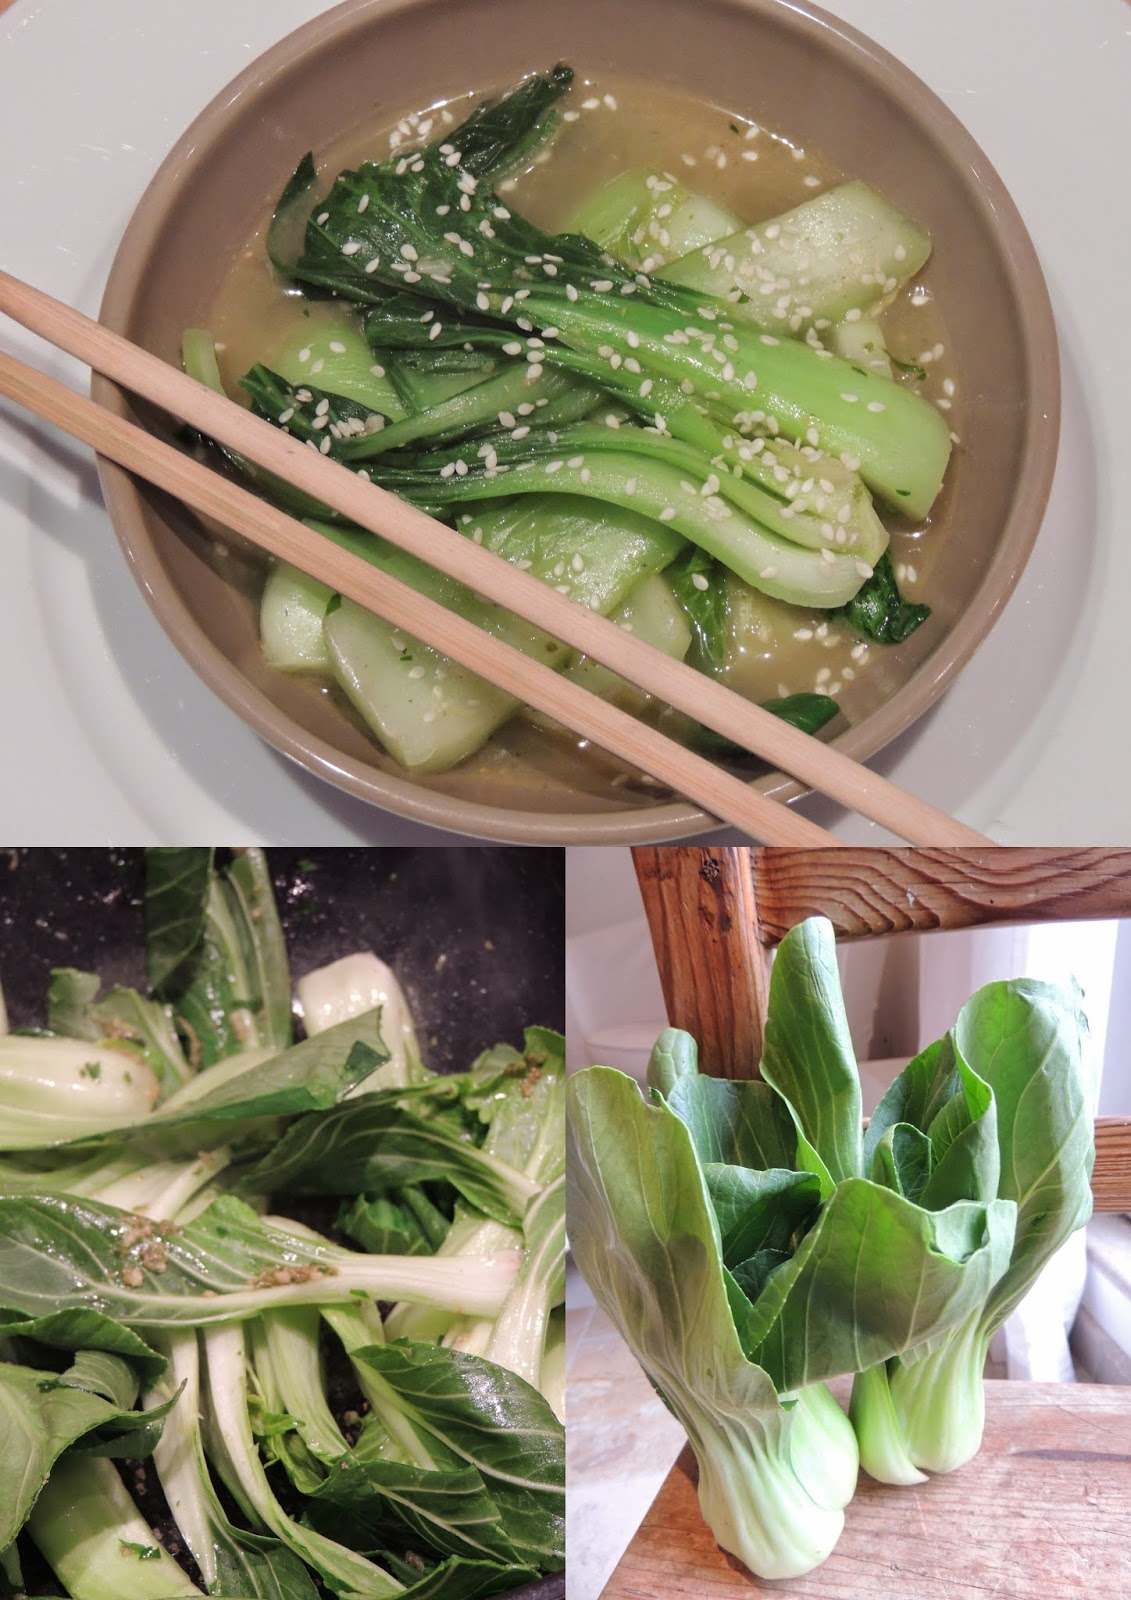 midi cuisine pak choi au bouillon de combawa et s same recette l g re. Black Bedroom Furniture Sets. Home Design Ideas